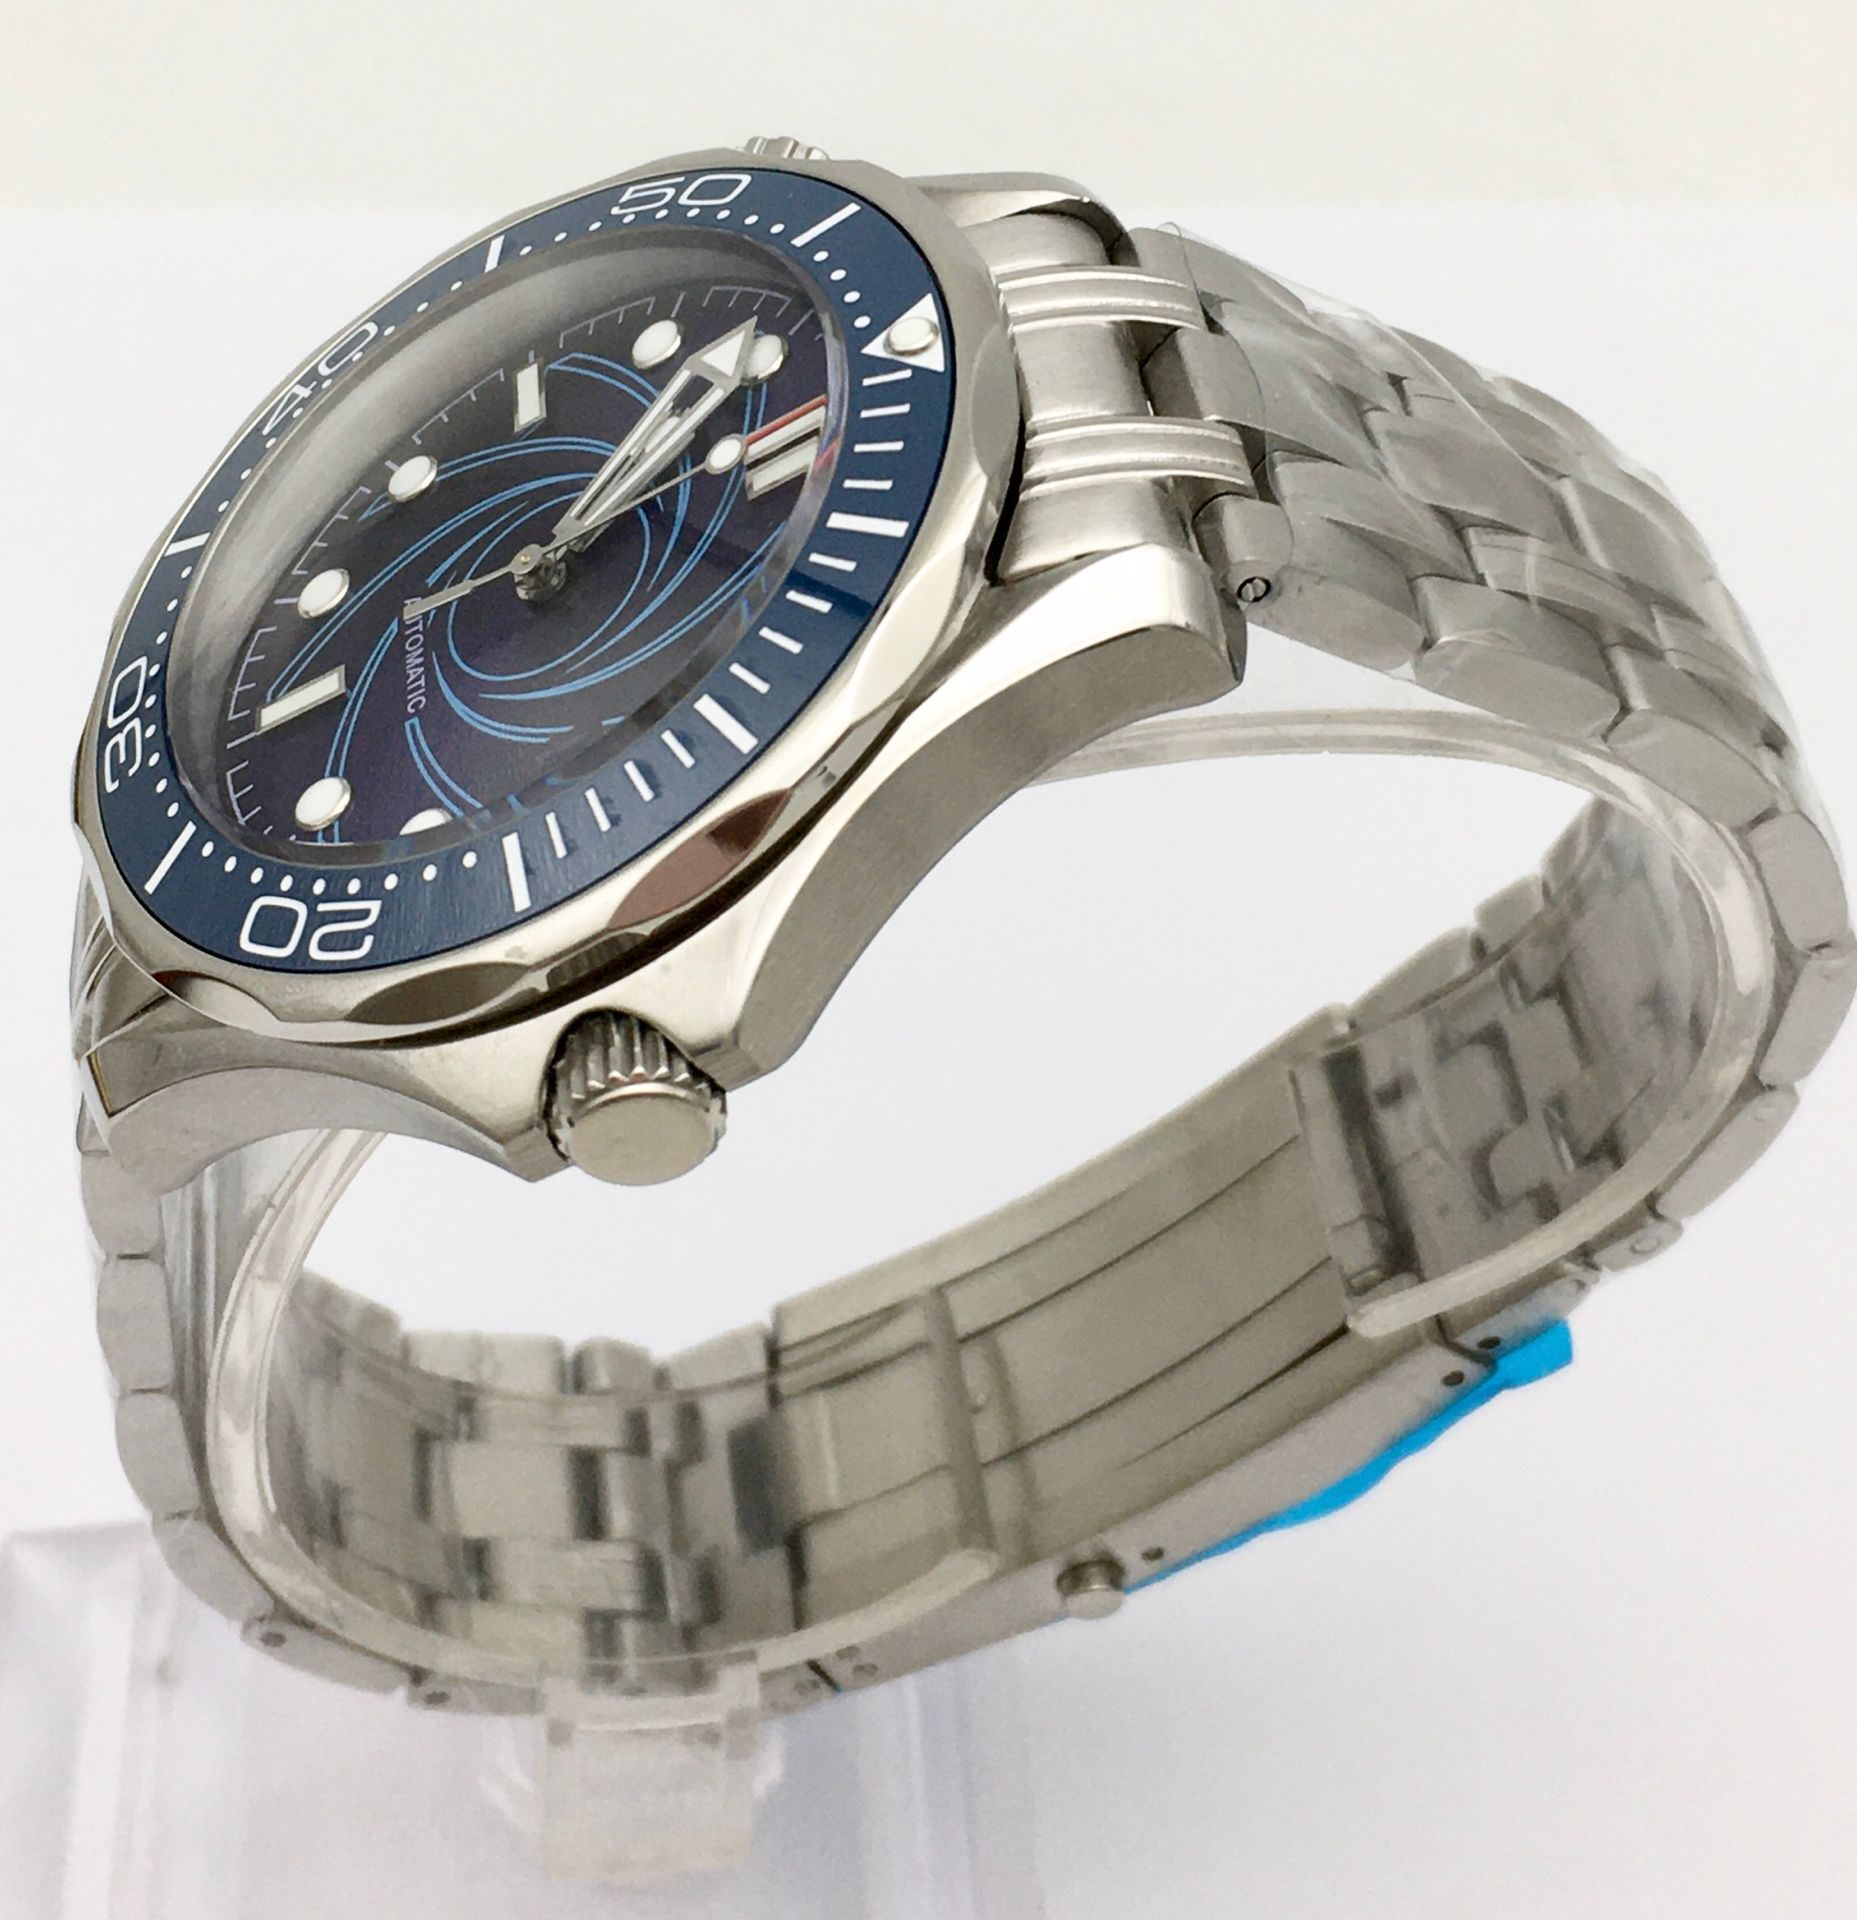 41 cm blue dial watch men's watch automatic mechanical clock date ceramic bezel stainless steel solid case 007 enlarge